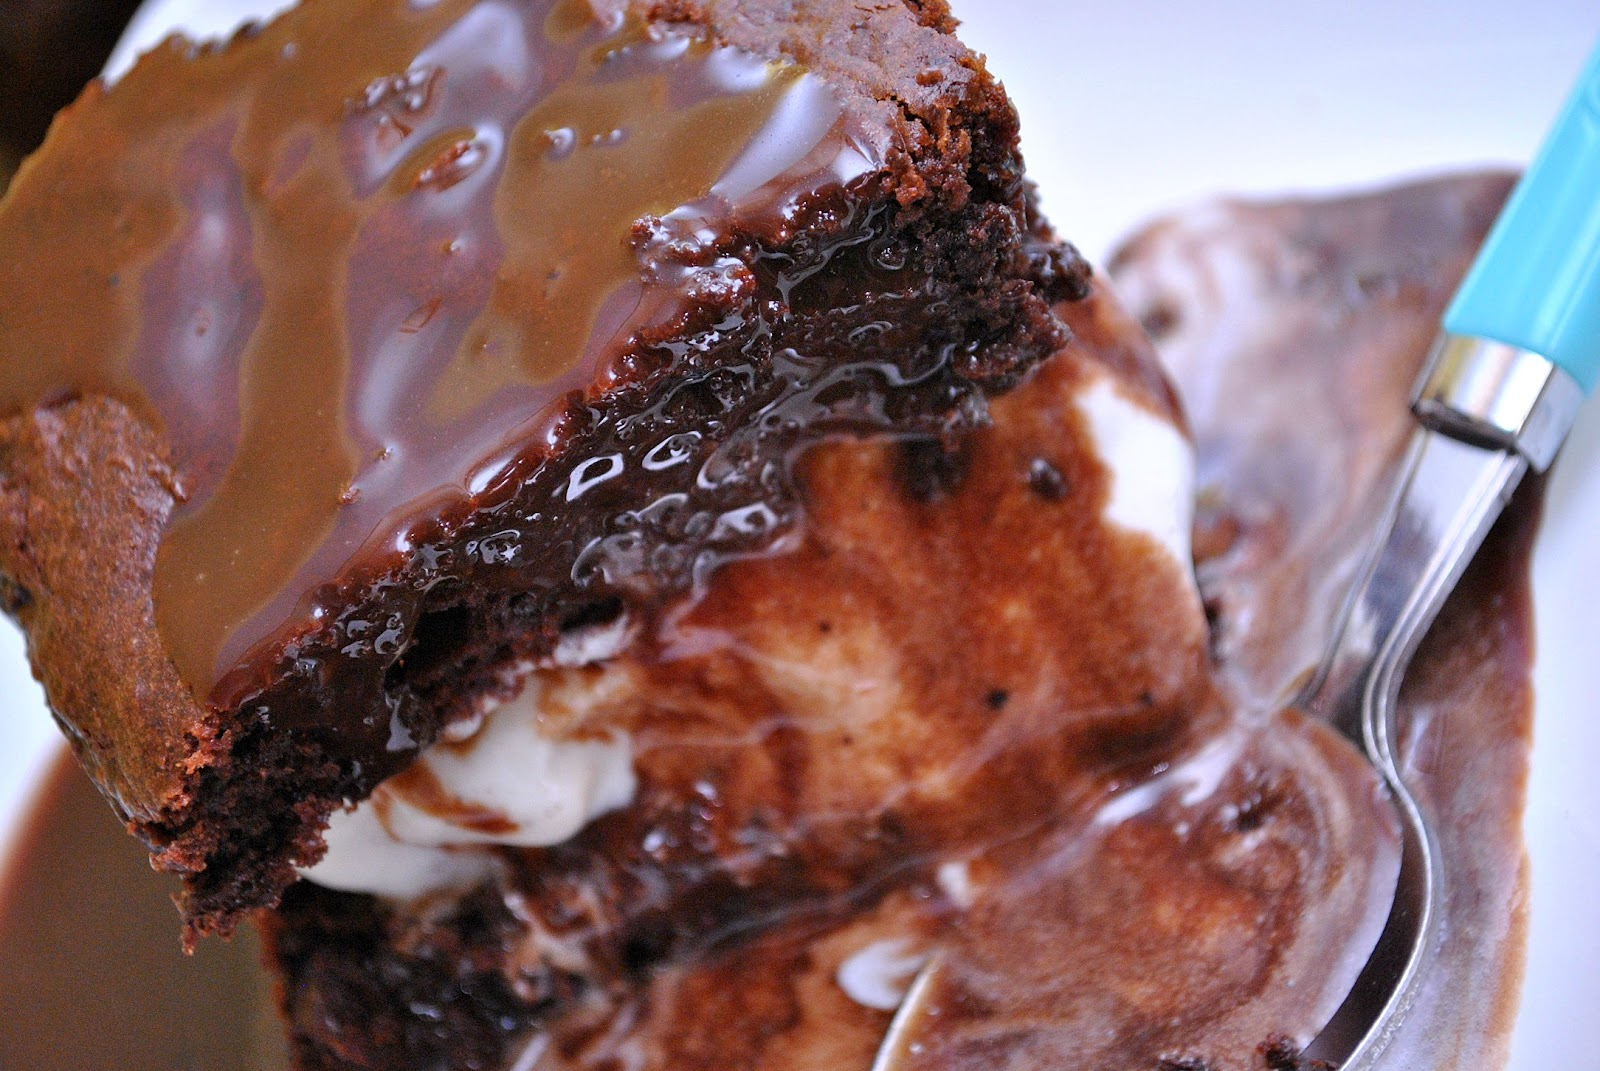 Best Hot Fudge Sauce & Hot Fudge Sundae Cakes - Something Swanky